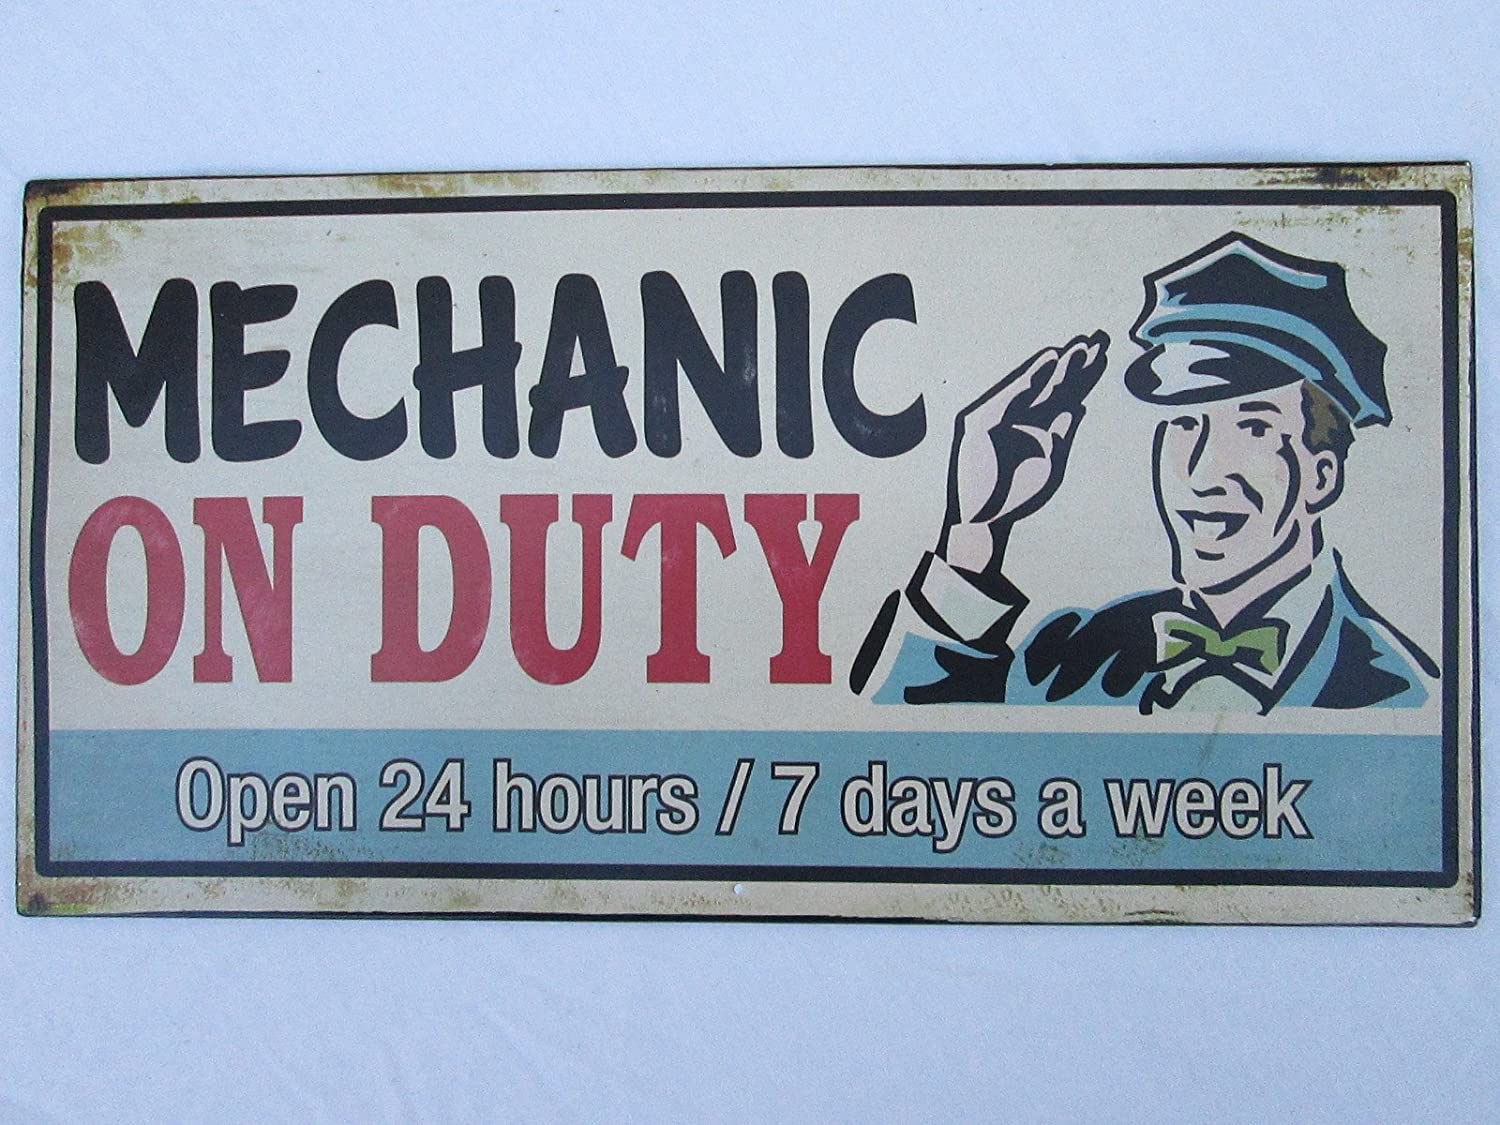 Man Cave Hours : Mechanic on duty open 24 hours 7 days a week distressed metal tin